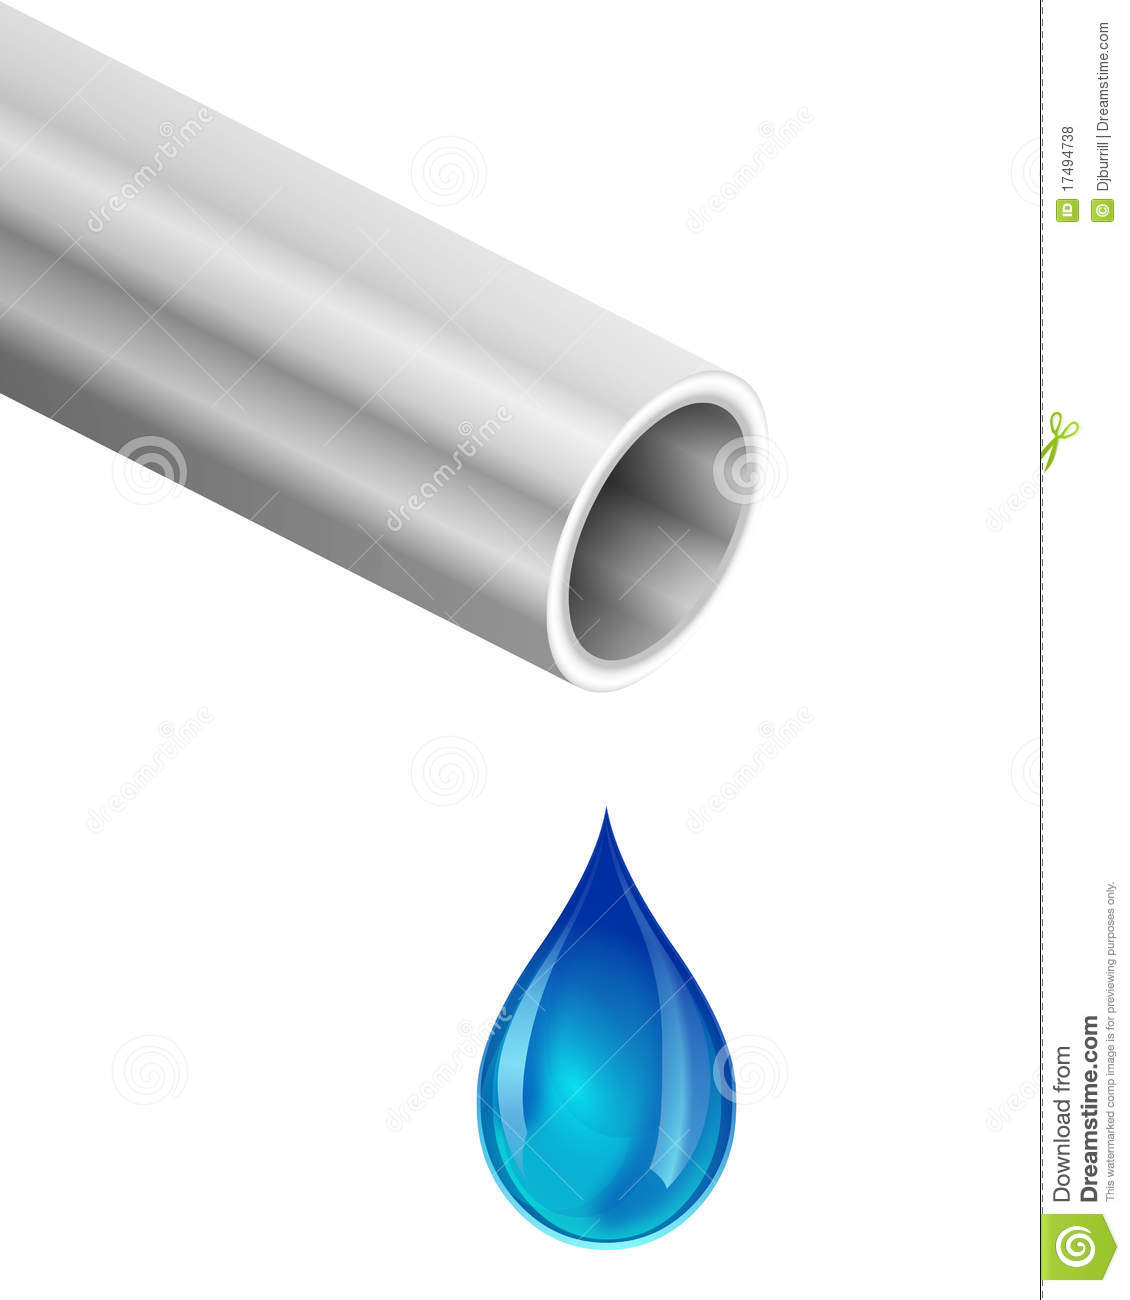 Water Dripping From Pipe Royalty Free Stock Photos - Image: 17494738